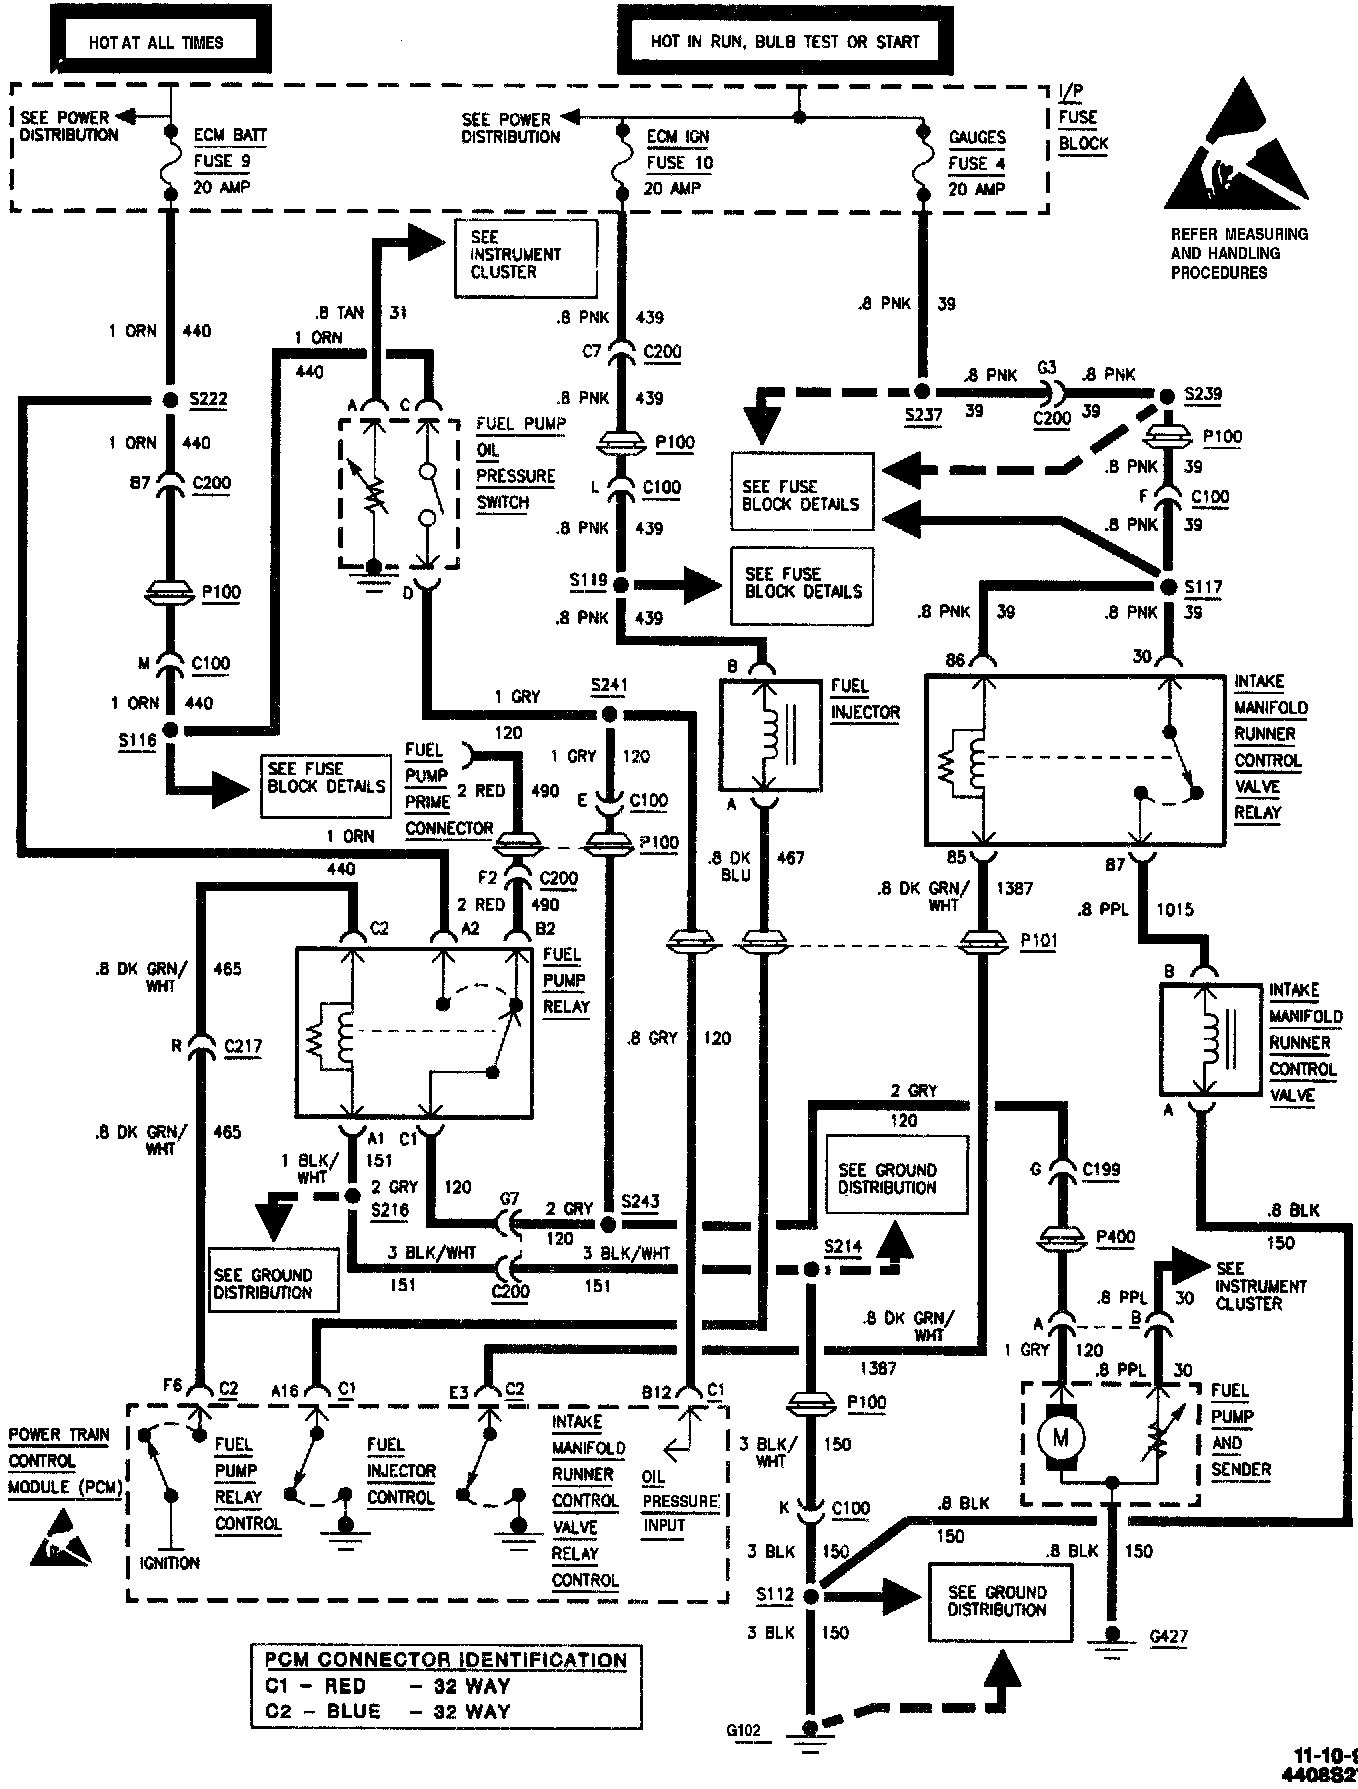 ac motor diagram pdf